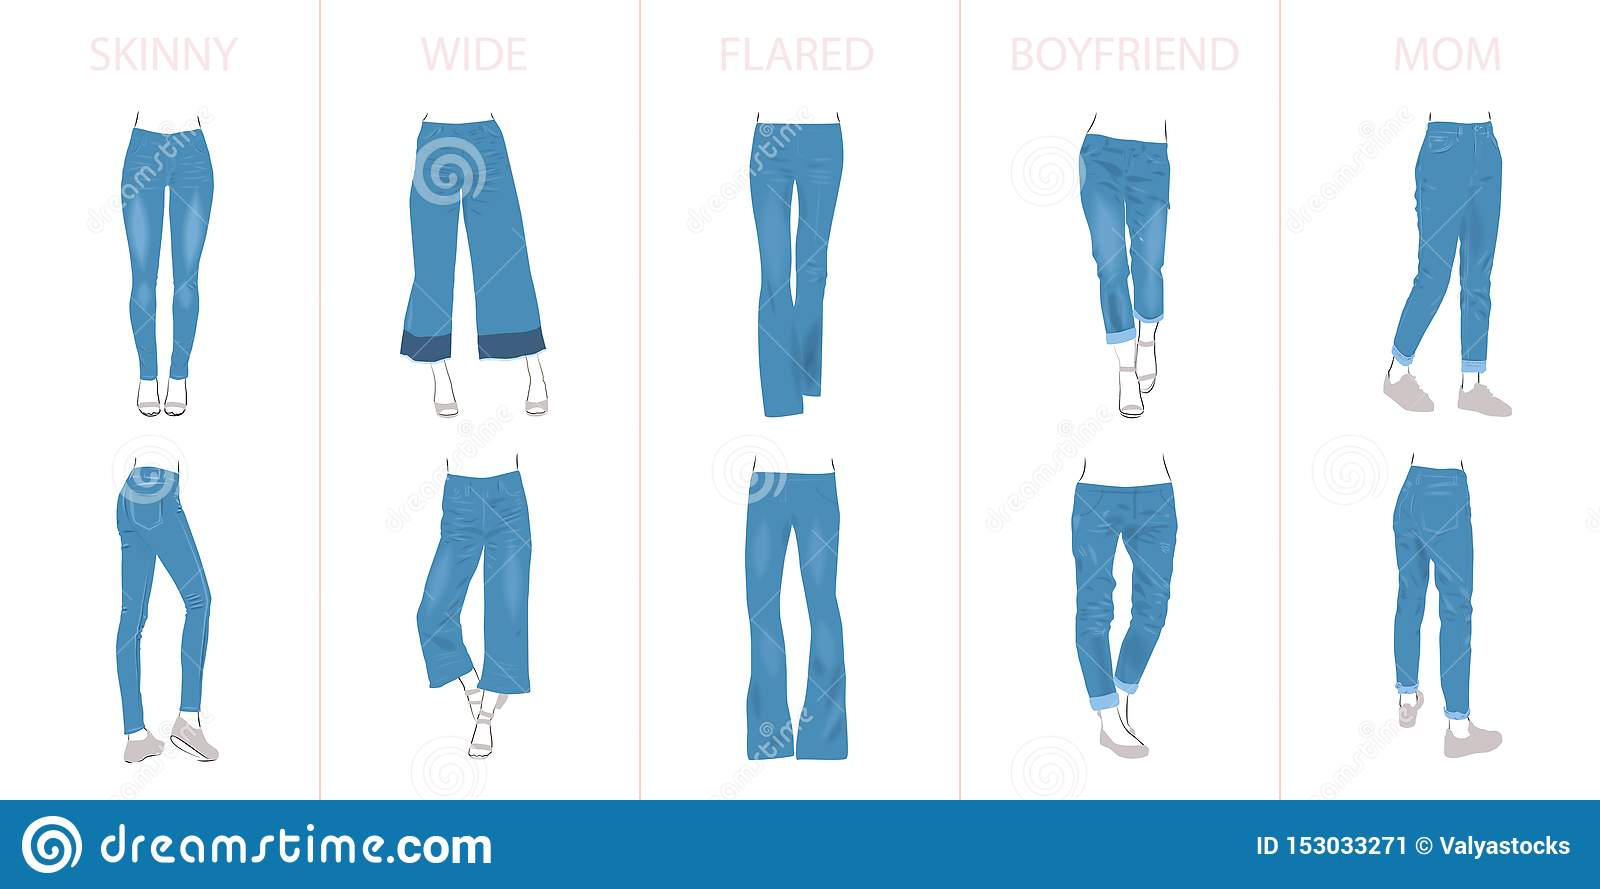 Illustration of jeans types